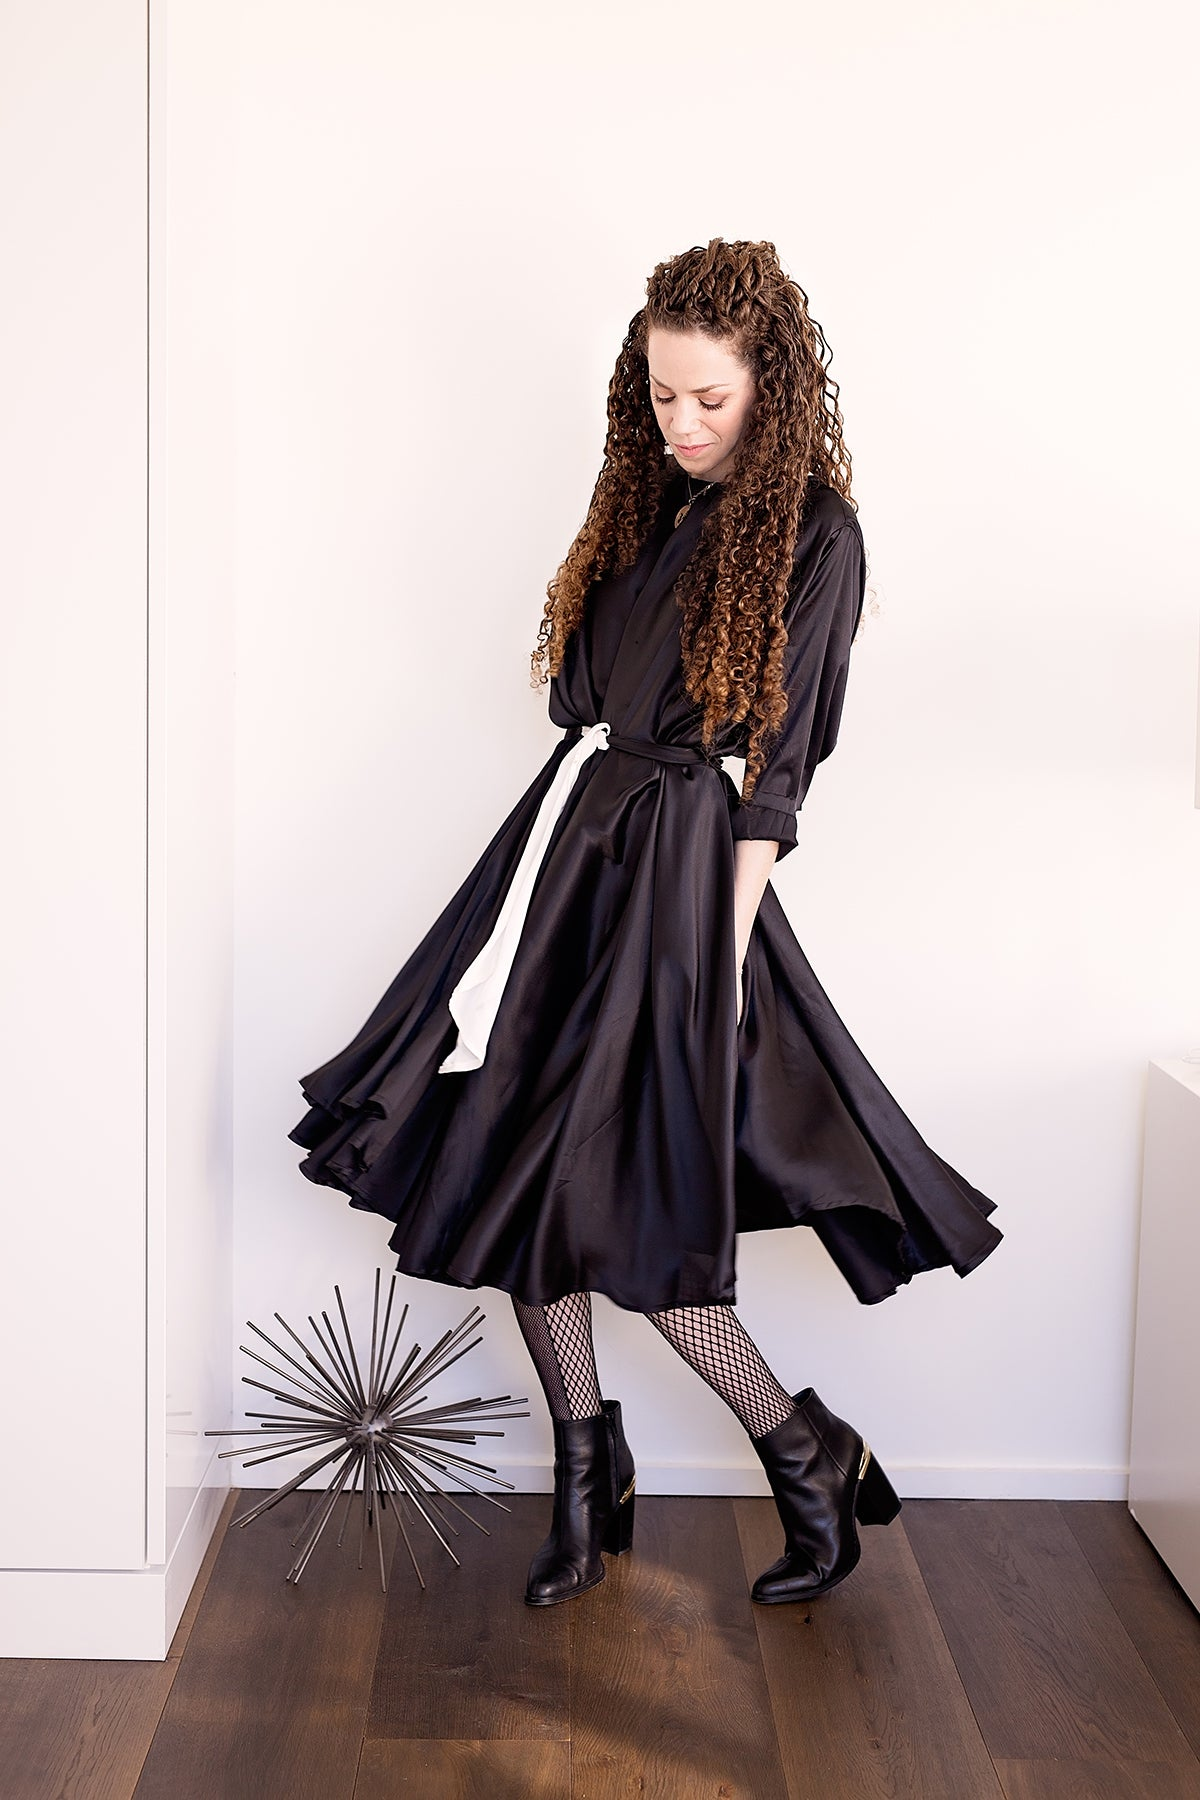 Shunka - Black Shine - PROJECT 6, modest fashion